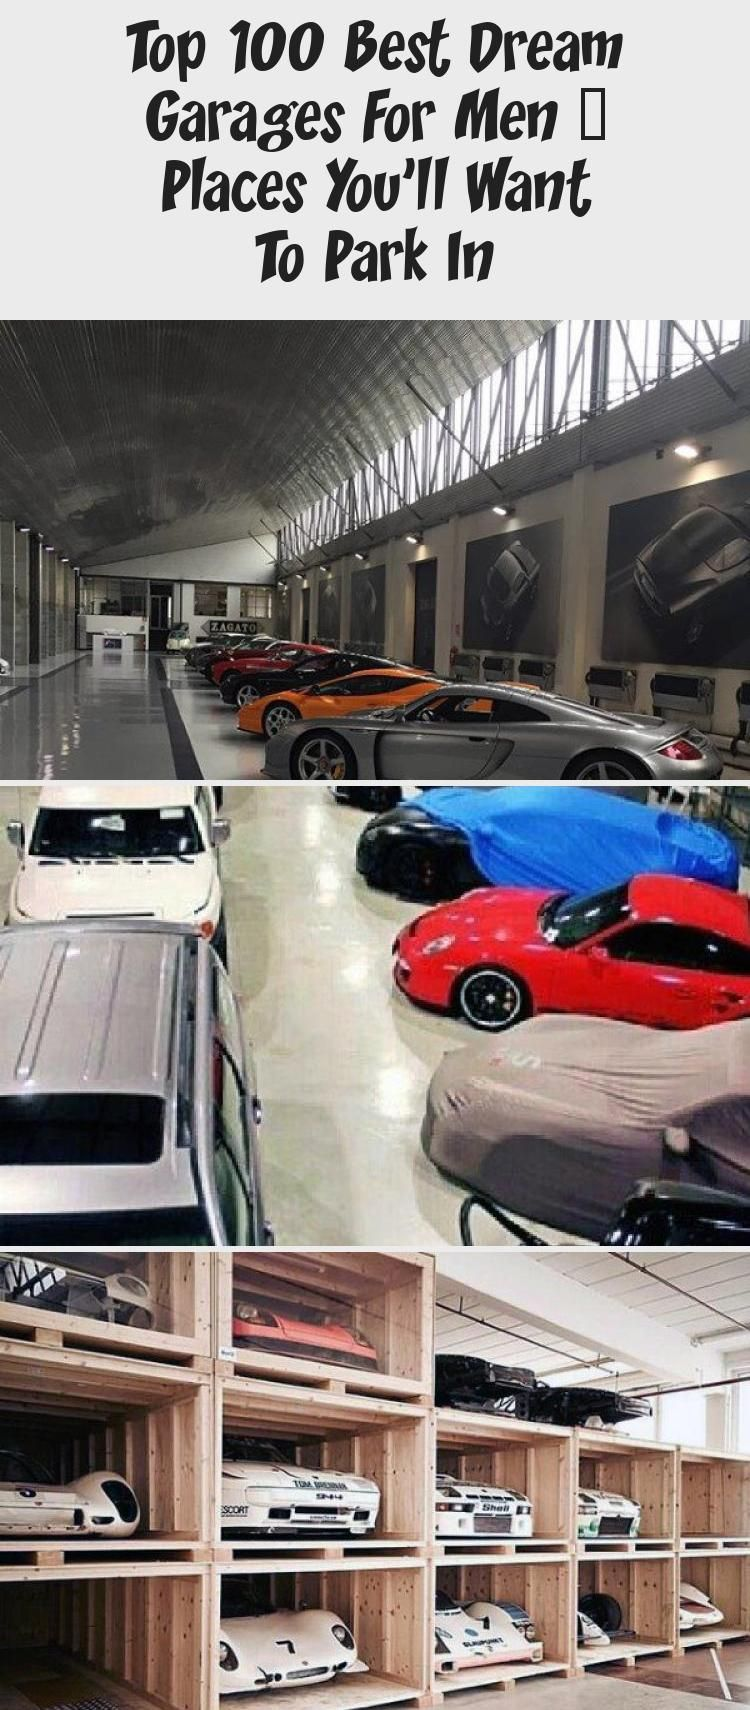 Huge Car Collection Dream Garage Filled With Exotics #Smallcars #carsIdeas #carsSports #carsForTeenagers #carsCake